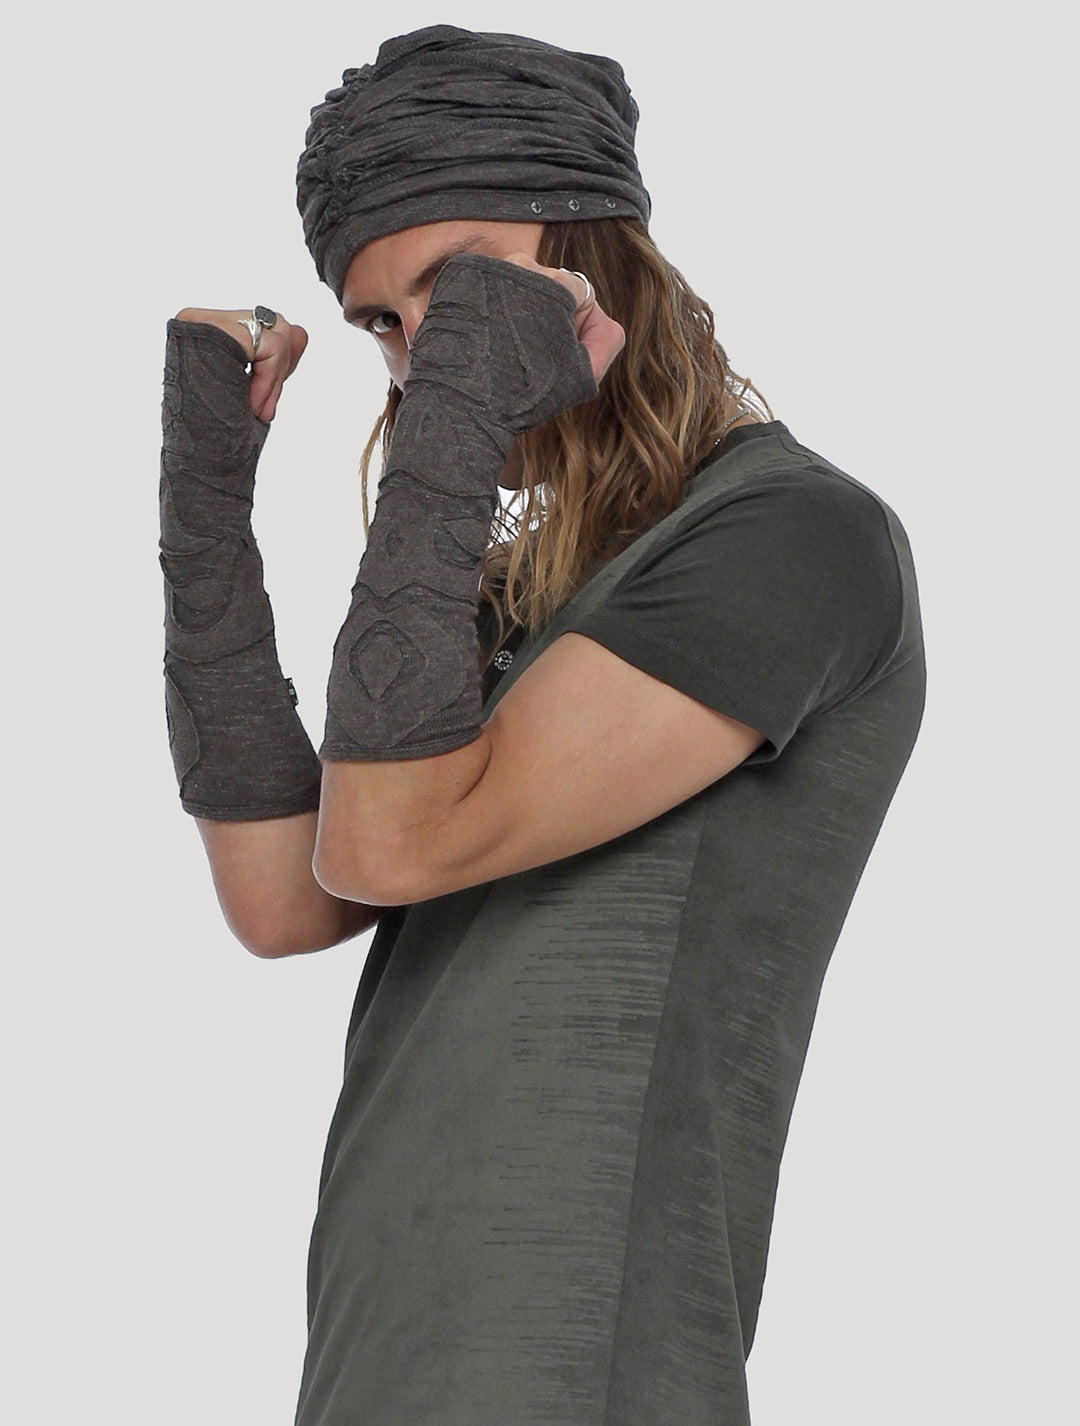 Mask Gloves